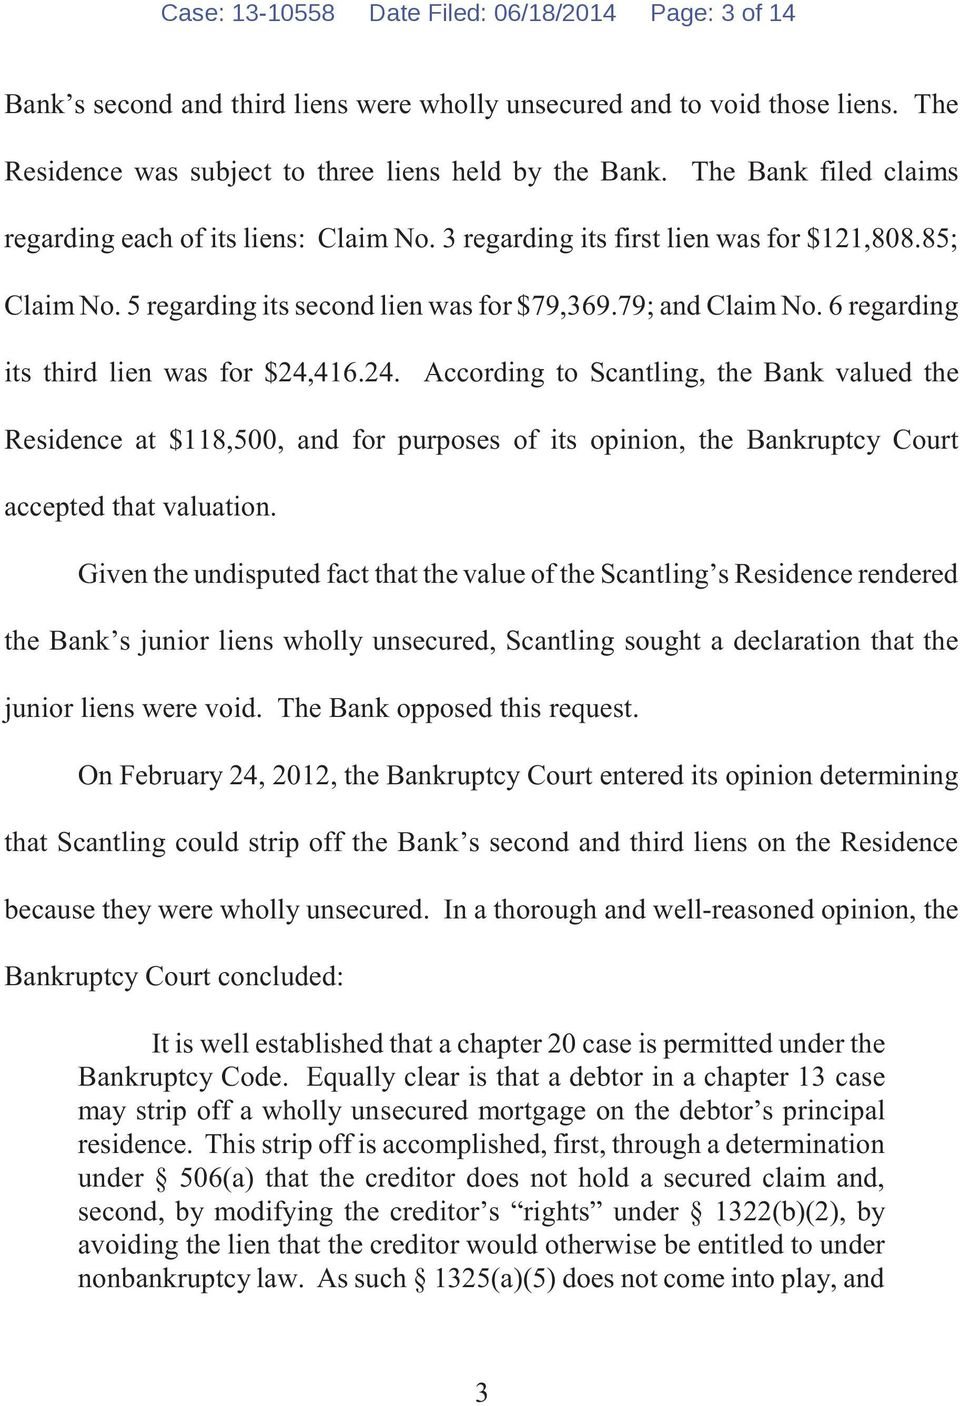 6 regarding its third lien was for $24,416.24. According to Scantling, the Bank valued the Residence at $118,500, and for purposes of its opinion, the Bankruptcy Court accepted that valuation.